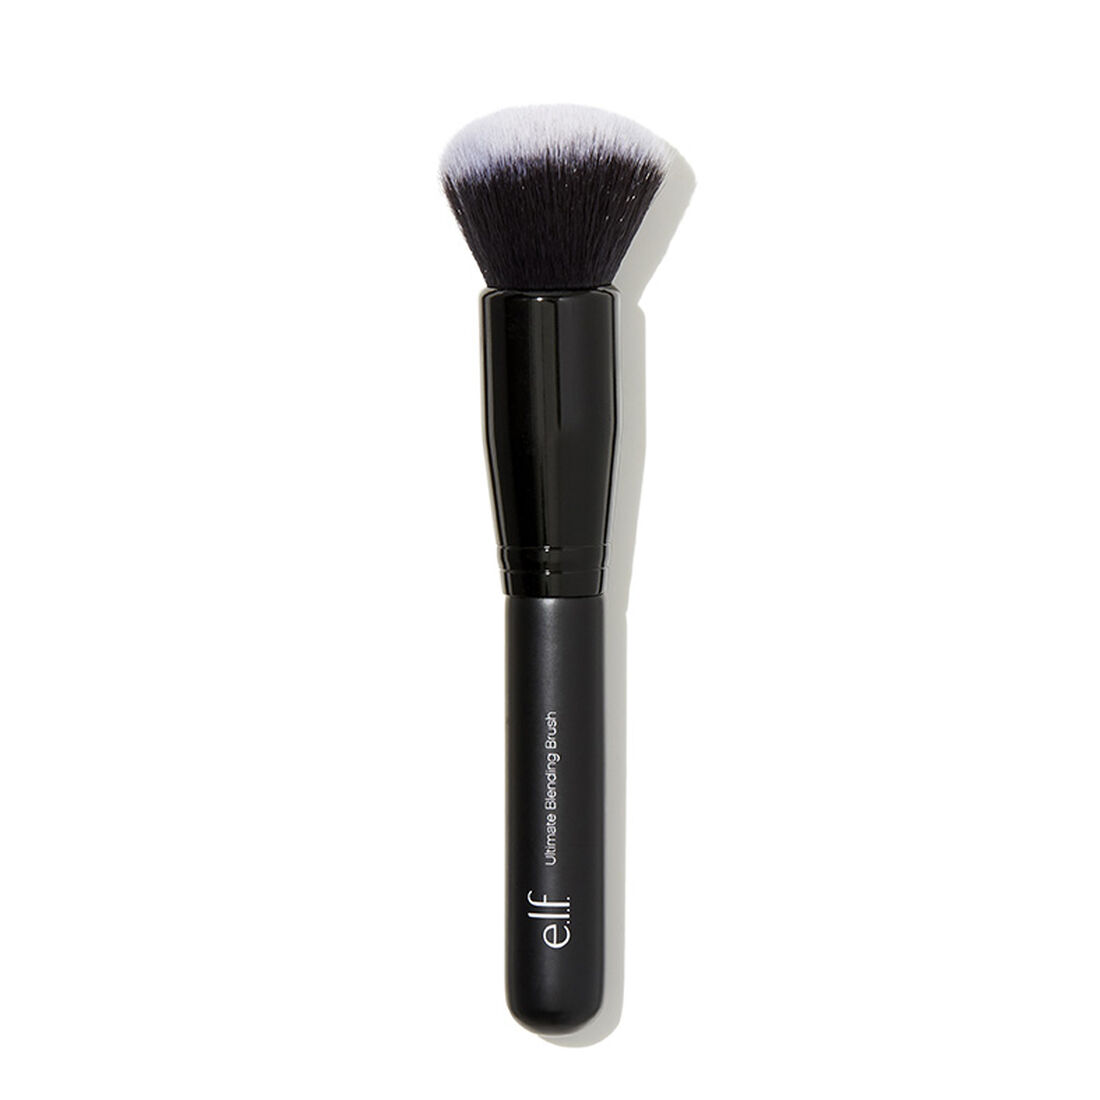 E.l.f Cosmetics - Ultimate Blending Brush